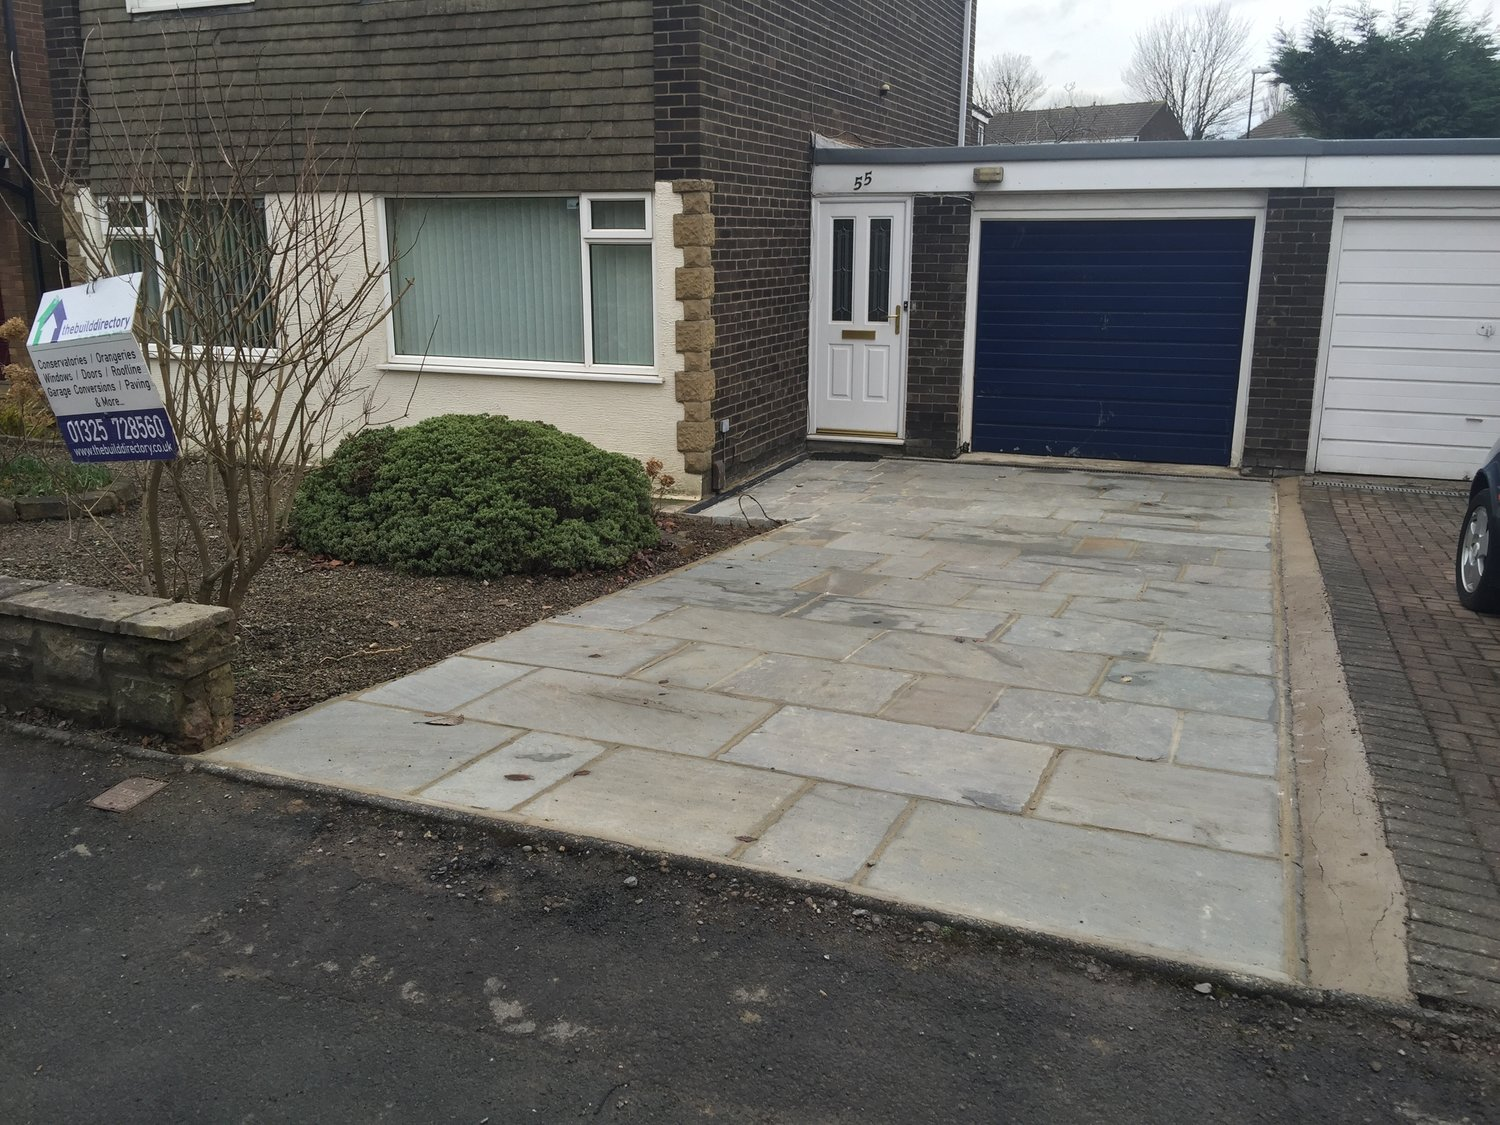 Before And After A Natural Stone Driveway In Harrogate The Build